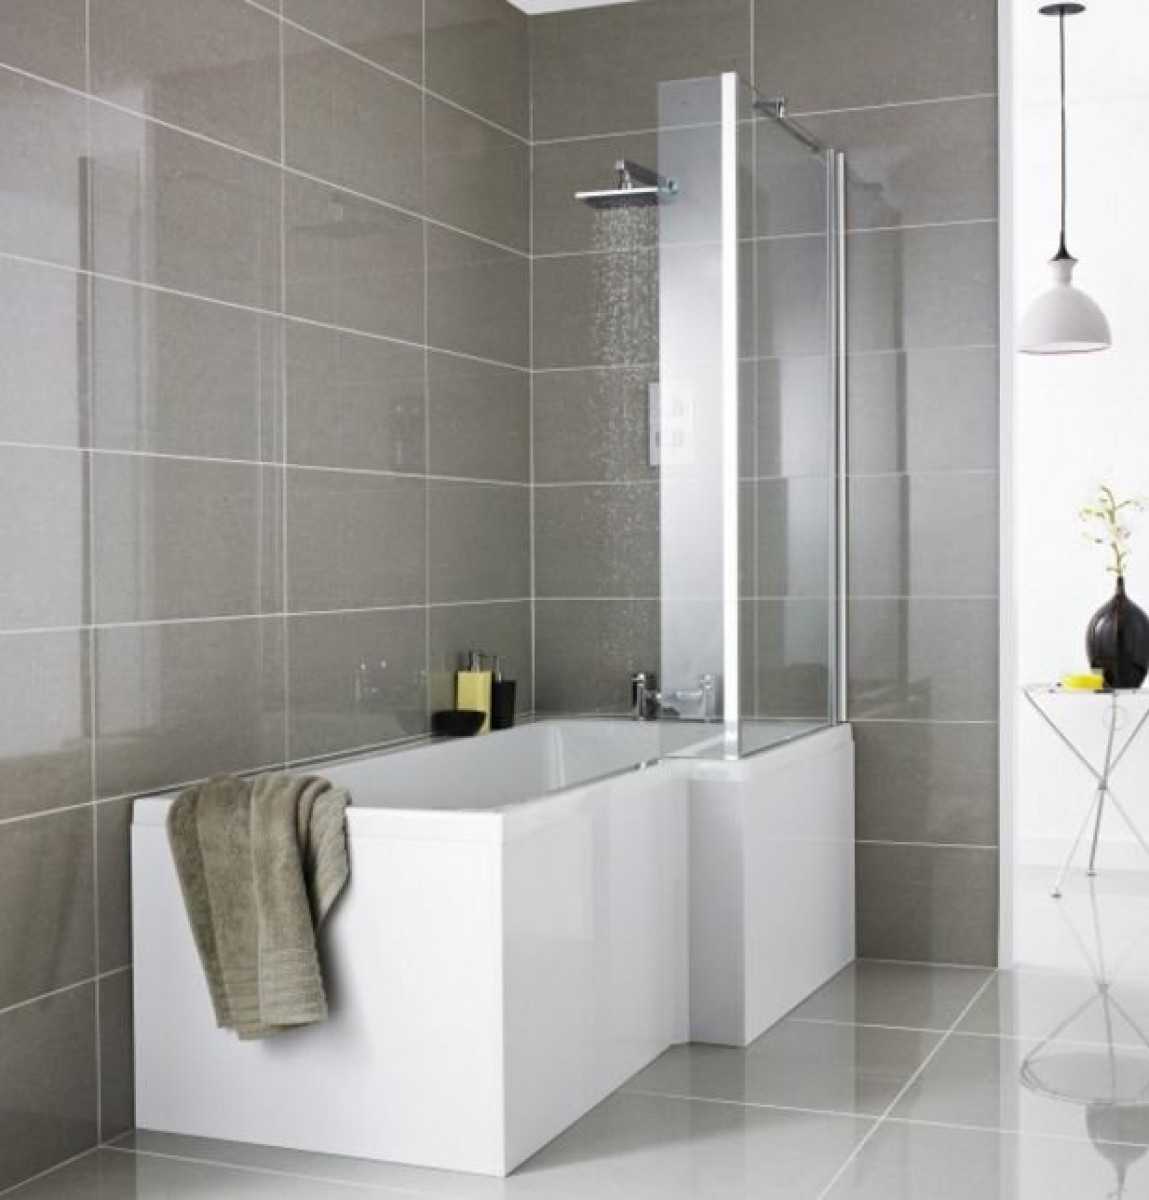 Premier Square 1700mm Right Hand Shower Bath | BMBS1785R